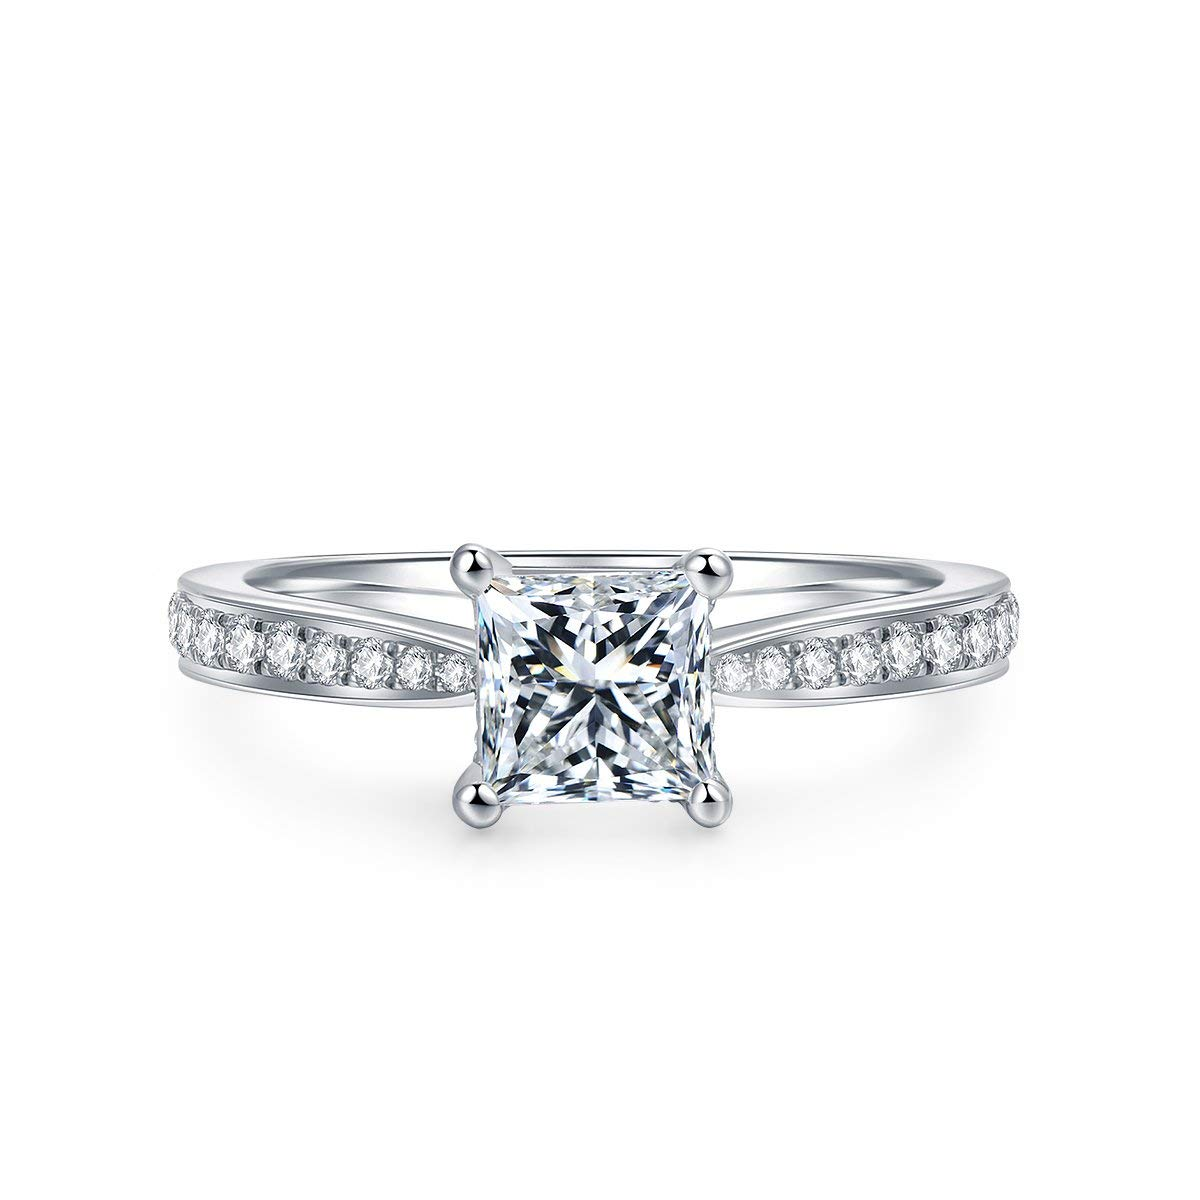 4-Prong Set 1.0 CT Princess brilliant Cut Simulated Diamond CZ Solitaire Engagement Wedding Ring Rhodium Plated Sterling Silver , 2.16 CTW (6)